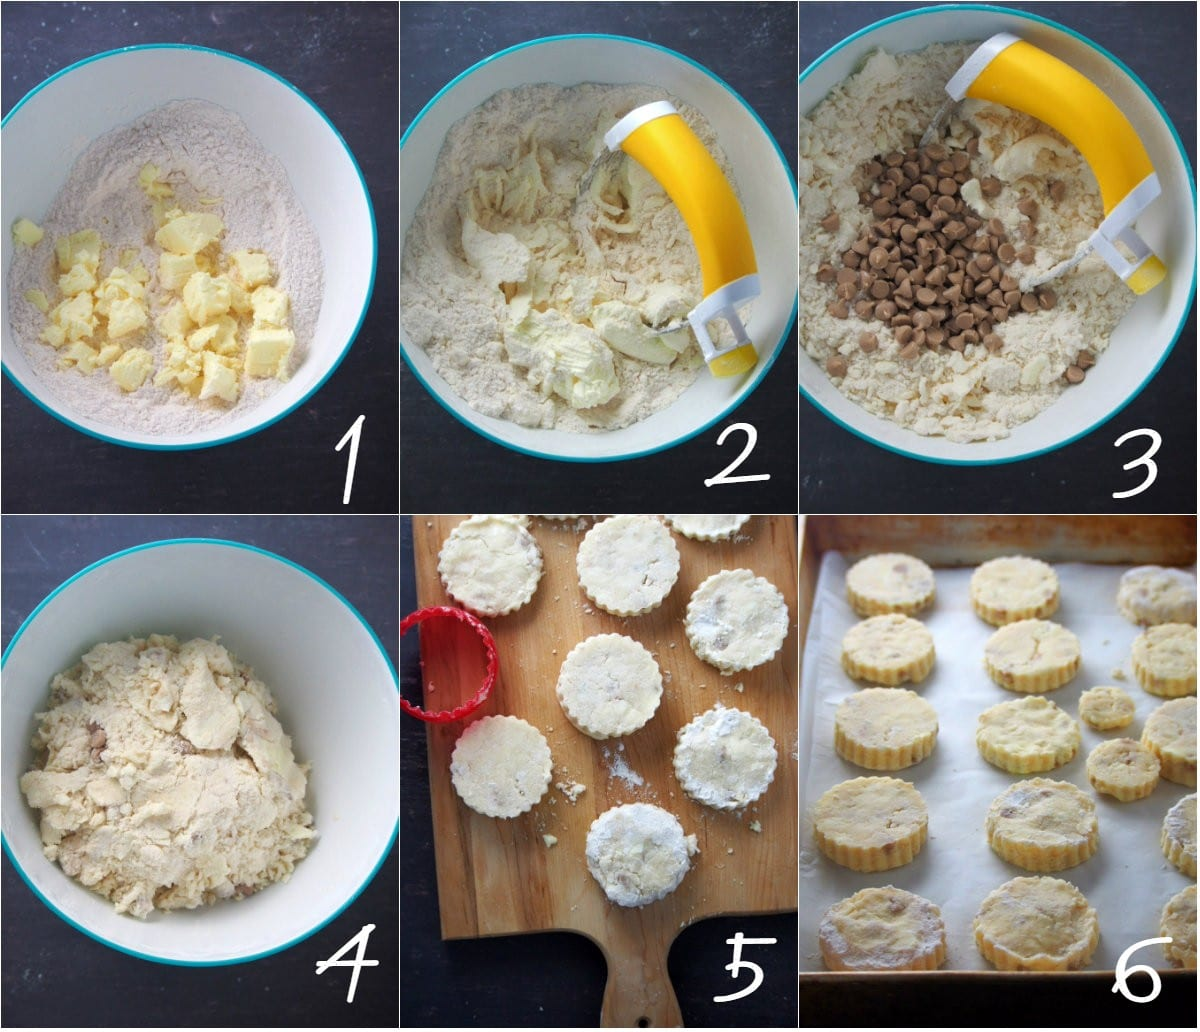 A collage showing the process of making salted caramel scones.